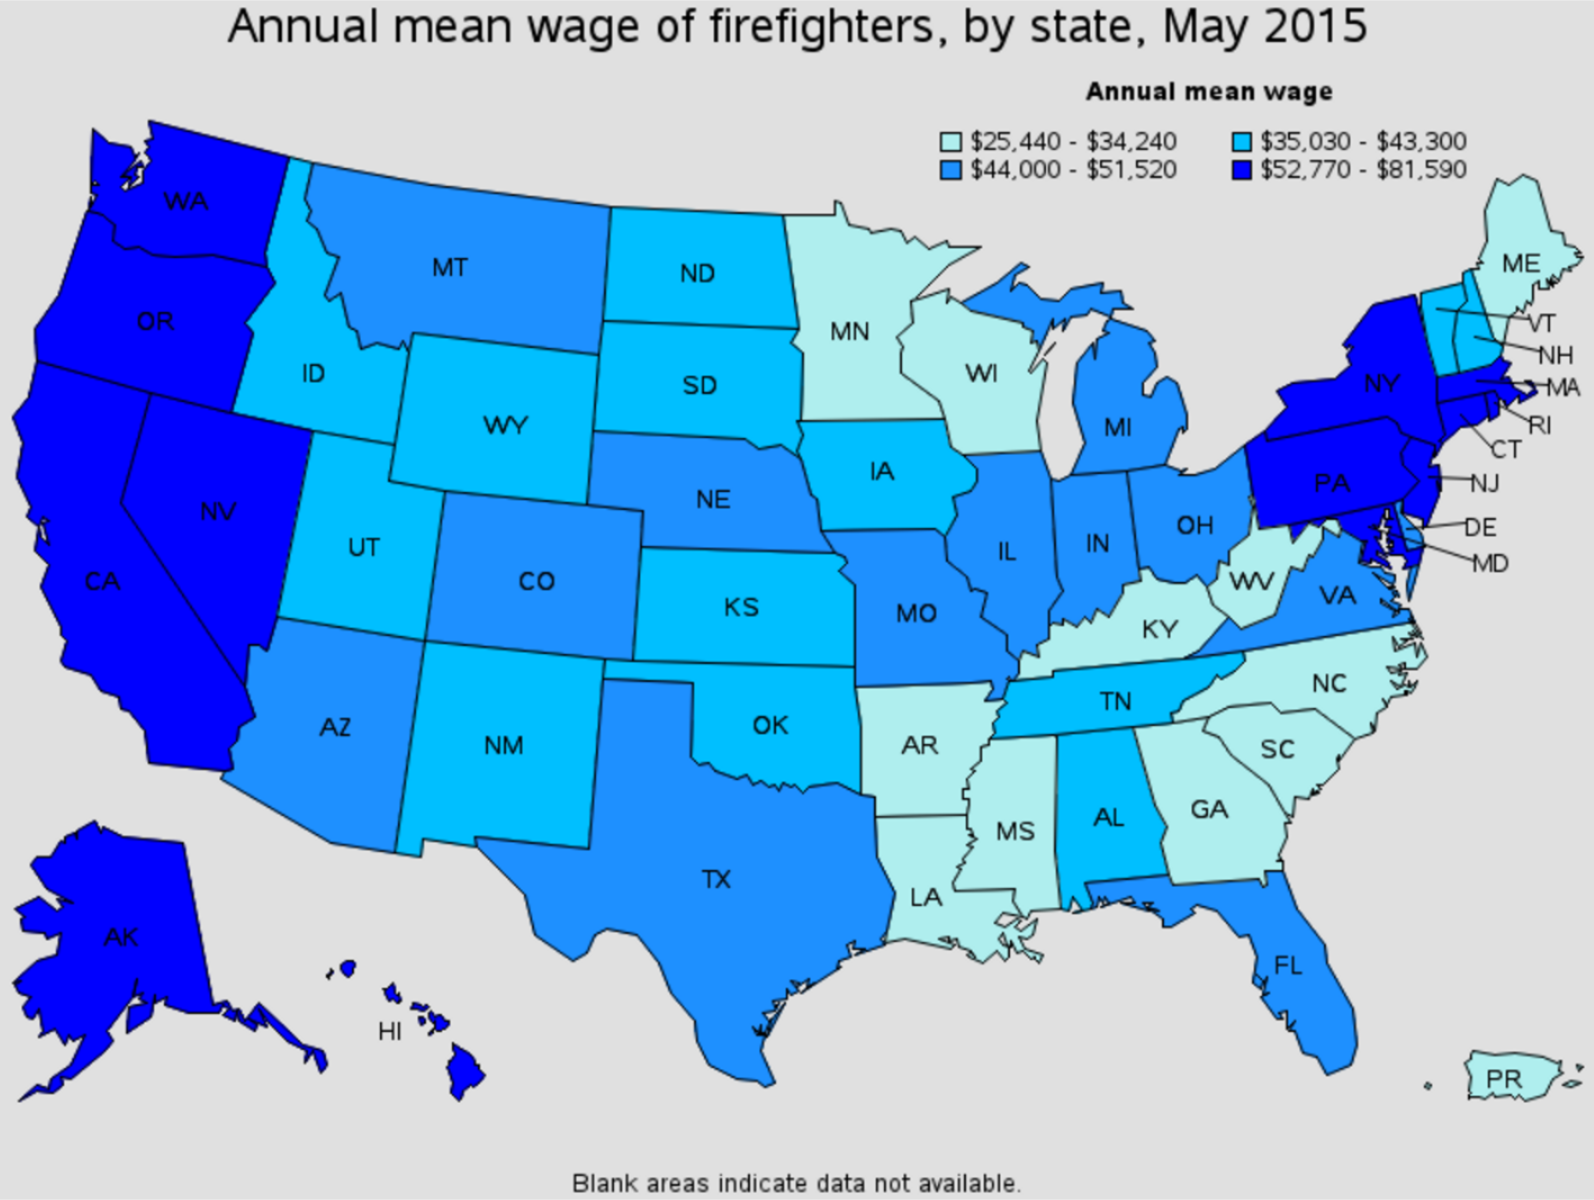 firefighter average salary by state Winona Missouri